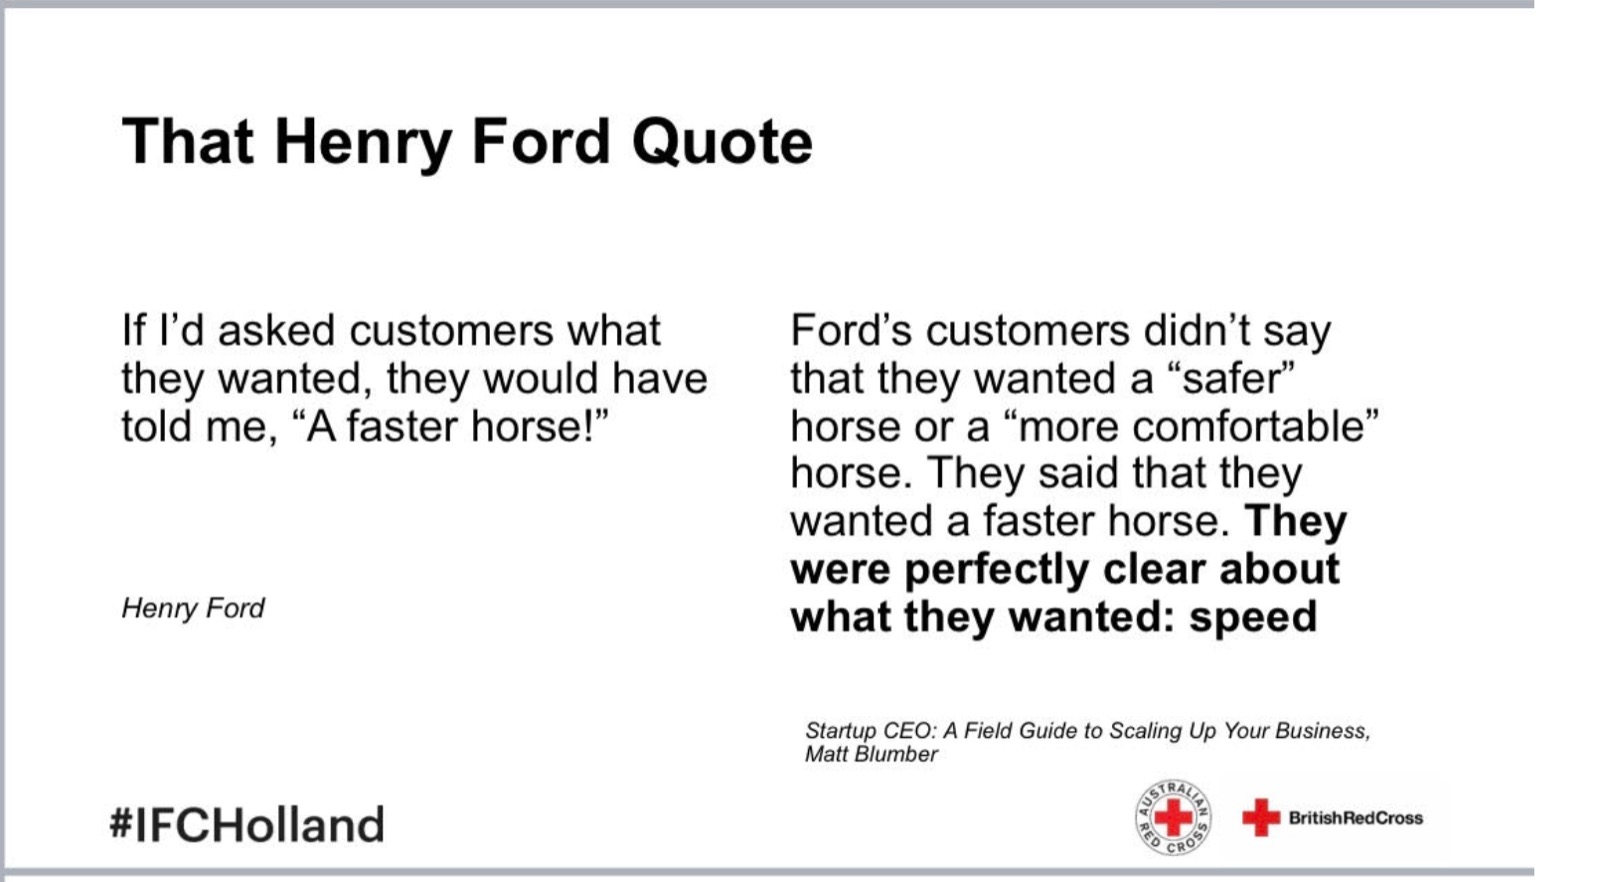 Slide from presentation with headline That Henry Ford Quote: If I'd asked customers what they wanted, they would have told me, A faster horse!. Followed by explanation, Ford's customers didn't say that they wanted a safer horse or a more comfortable horse. They said the wanted a faster horse. They were perfectly clear about what they wanted, speed